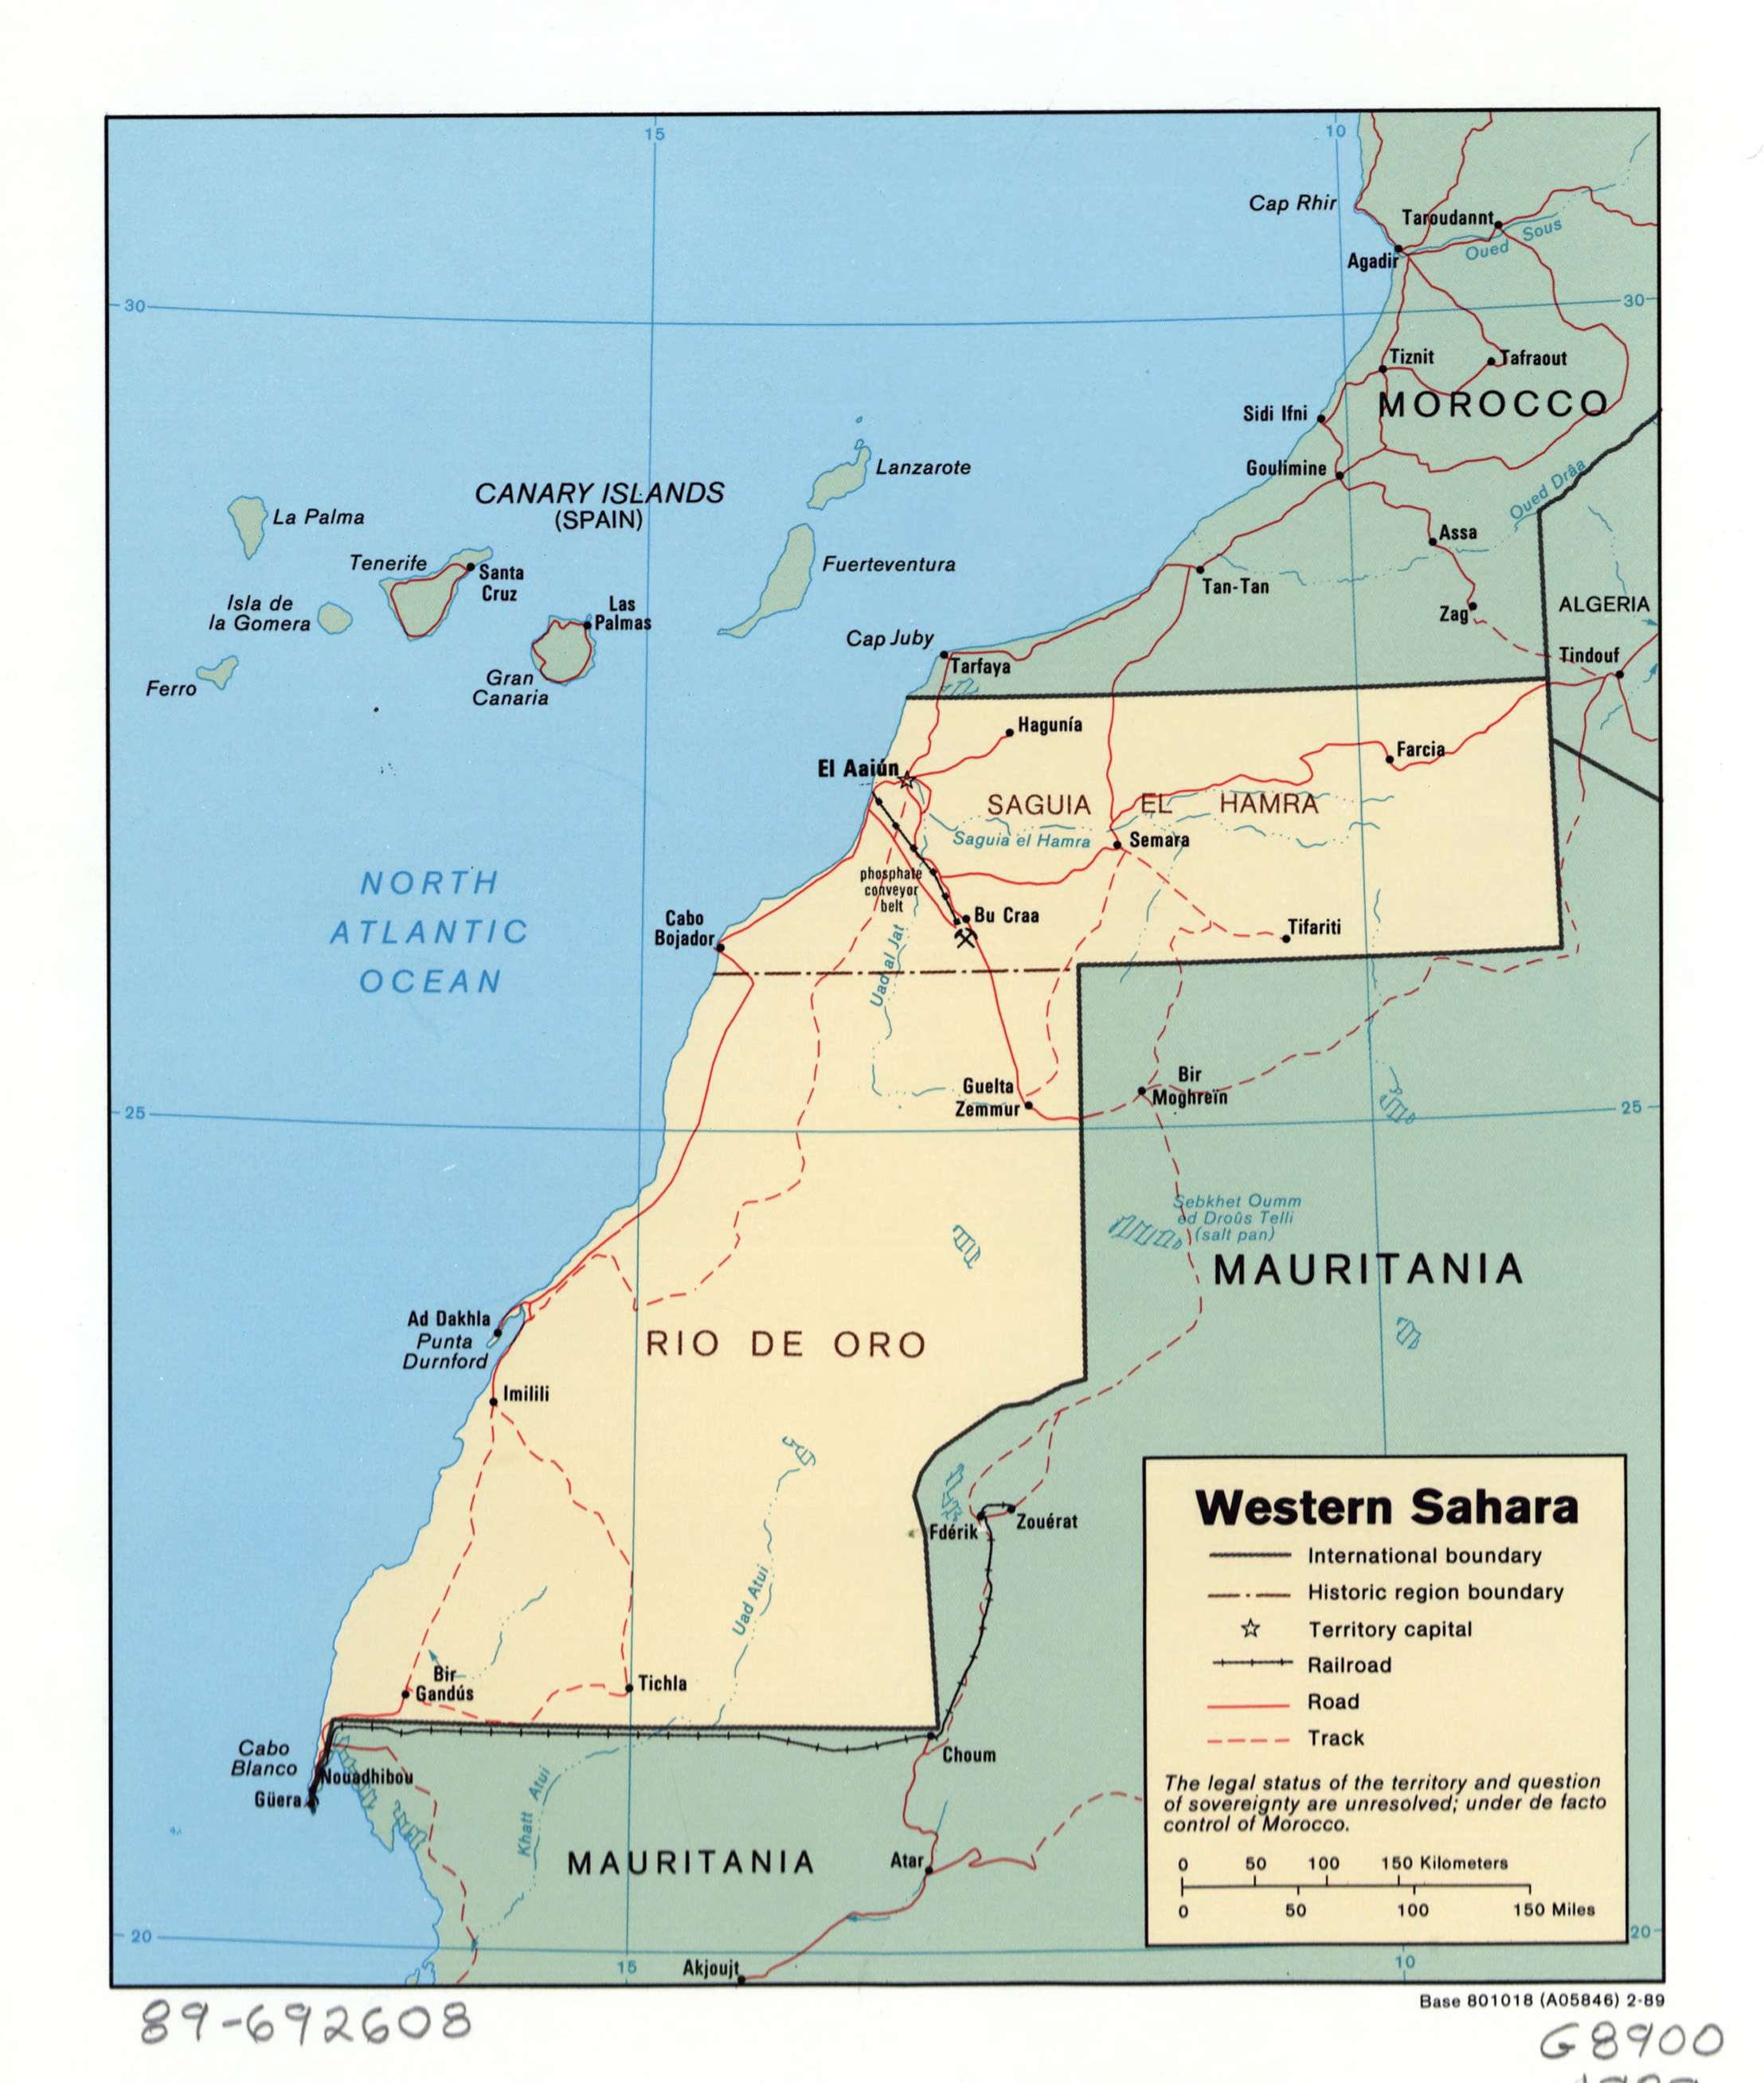 Large detailed political and administrative map of Western Sahara